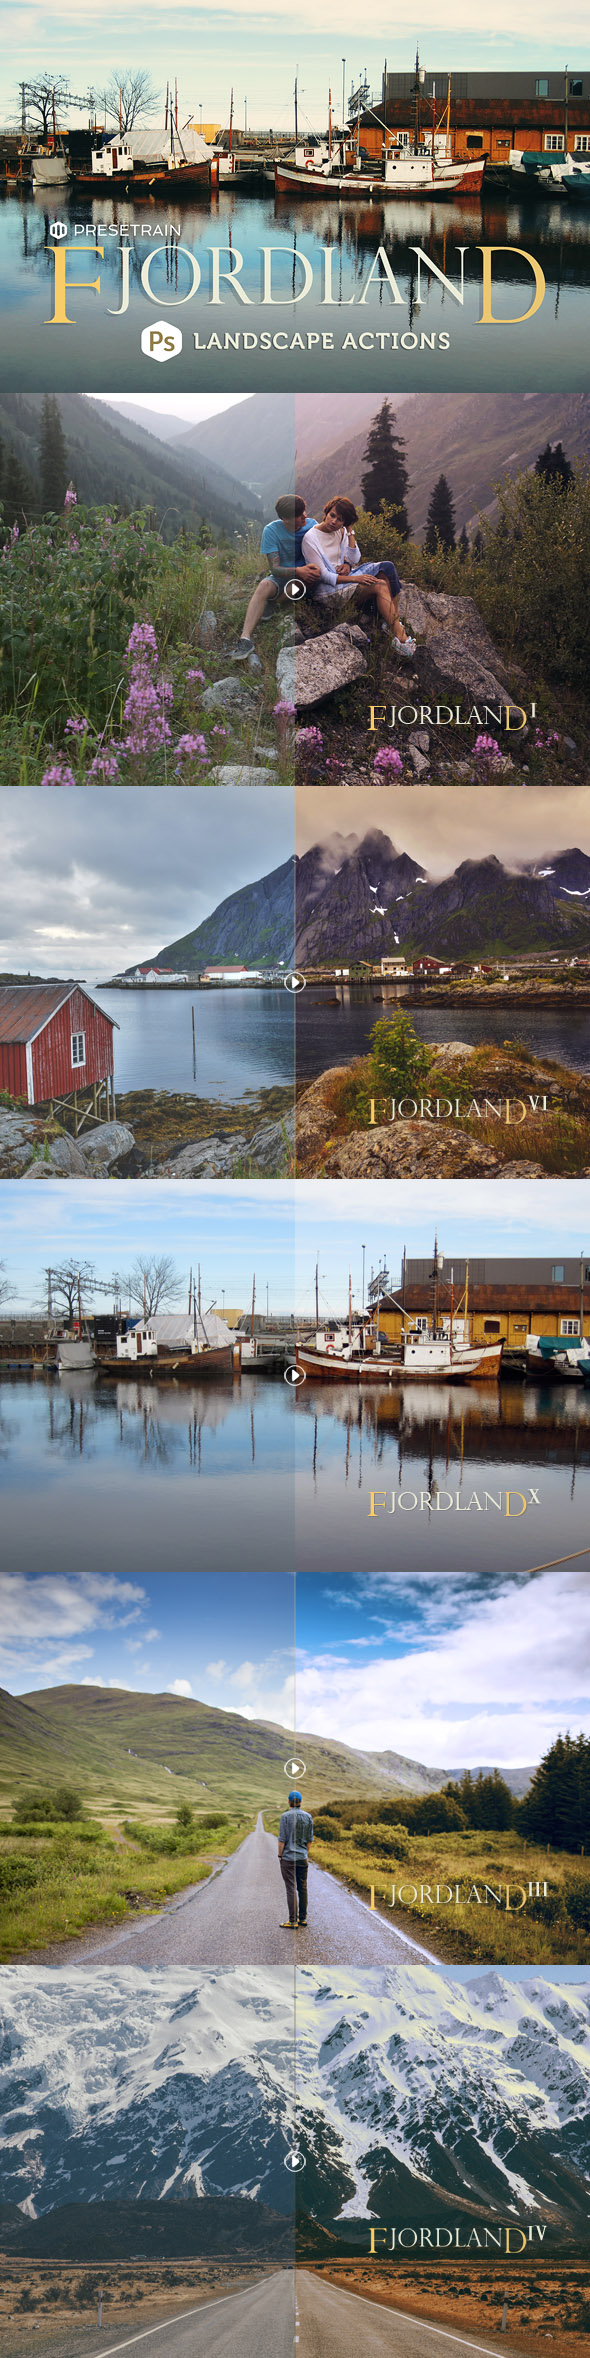 Fjordland Landscape Photoshop Actions - Photo Effects Actions